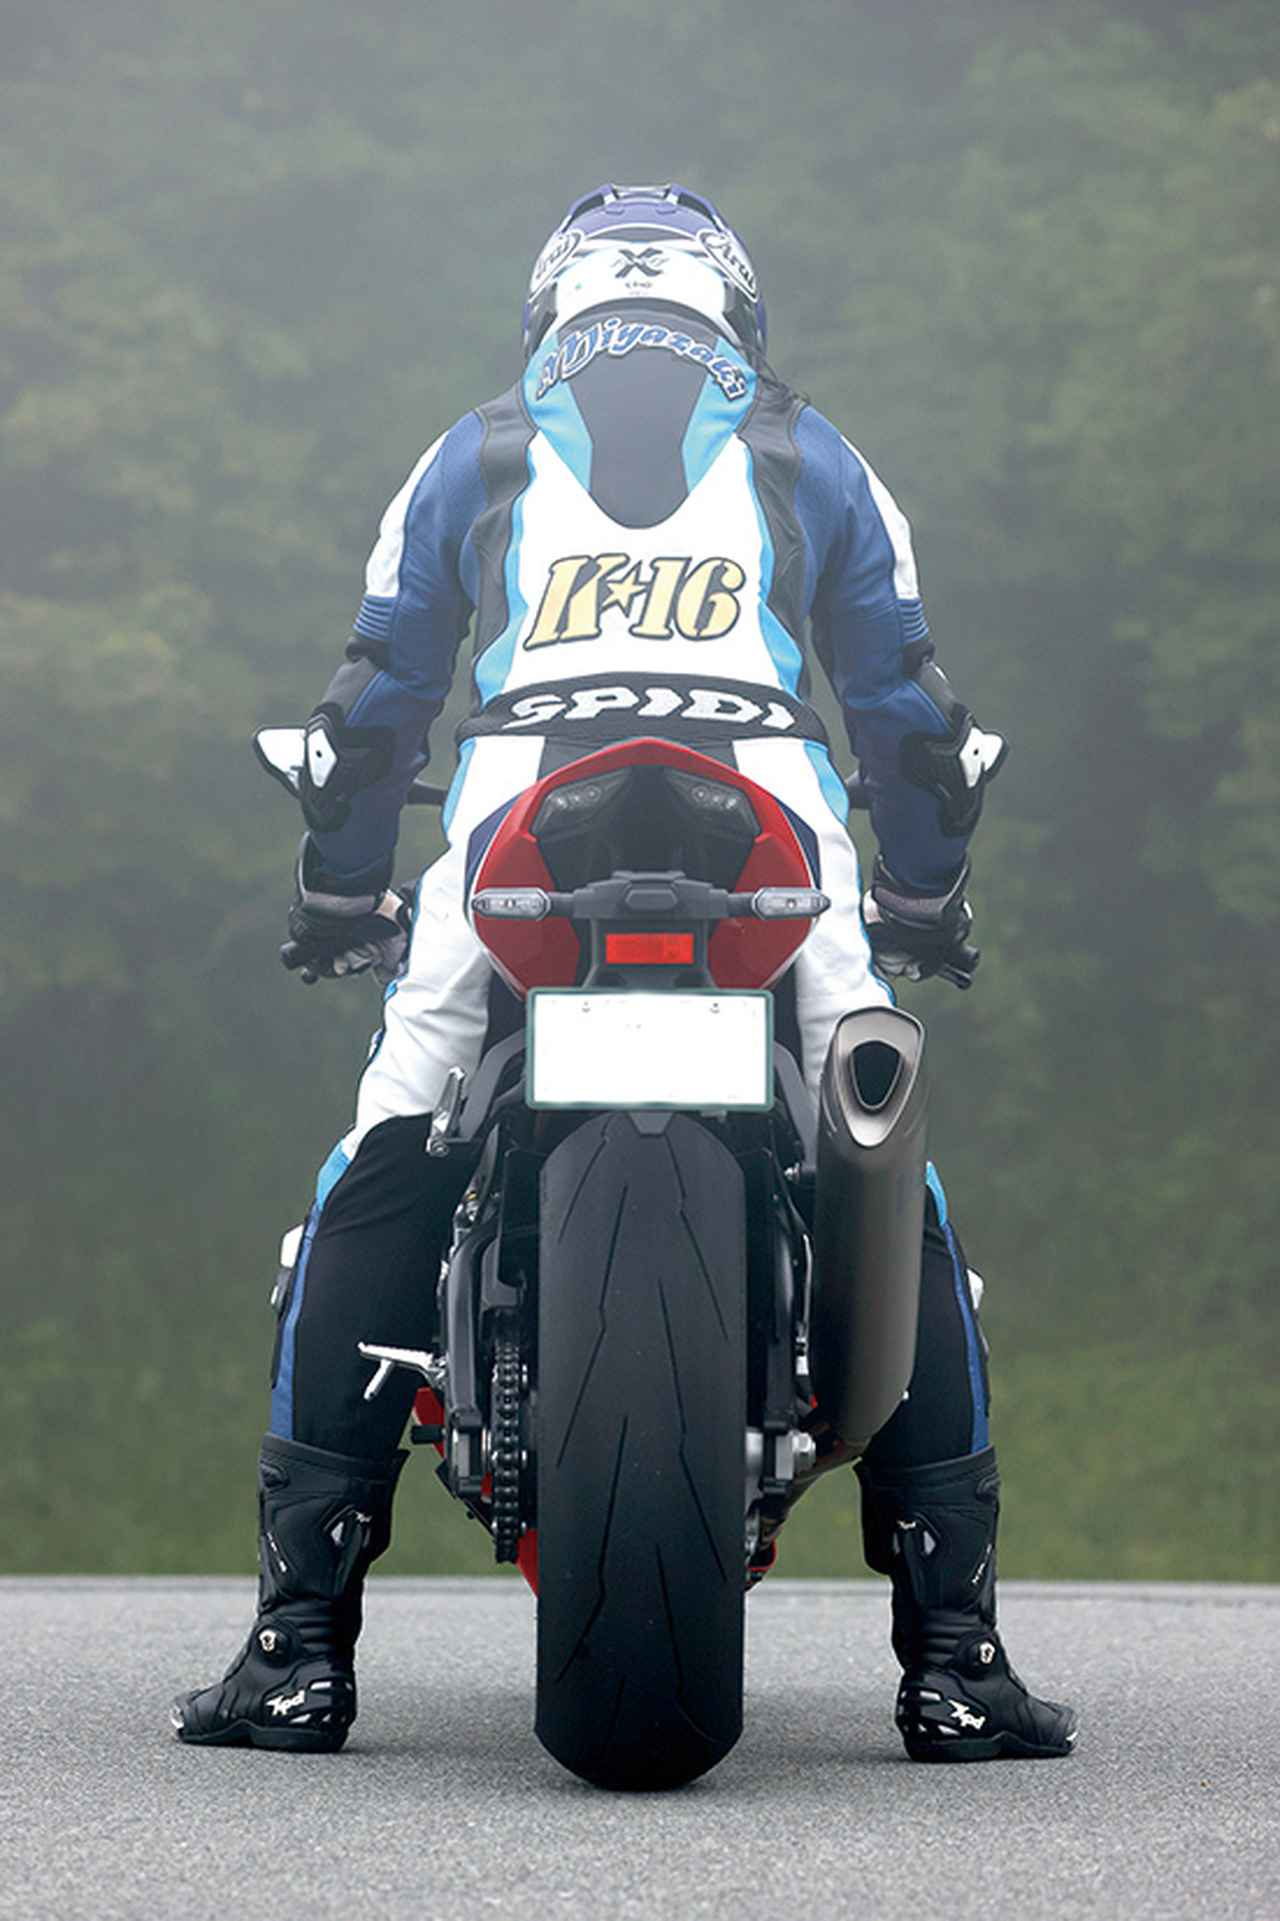 Images : 6番目の画像 - Honda CBR1000RR-R FIREBLADE SP - LAWRENCE - Motorcycle x Cars + α = Your Life.